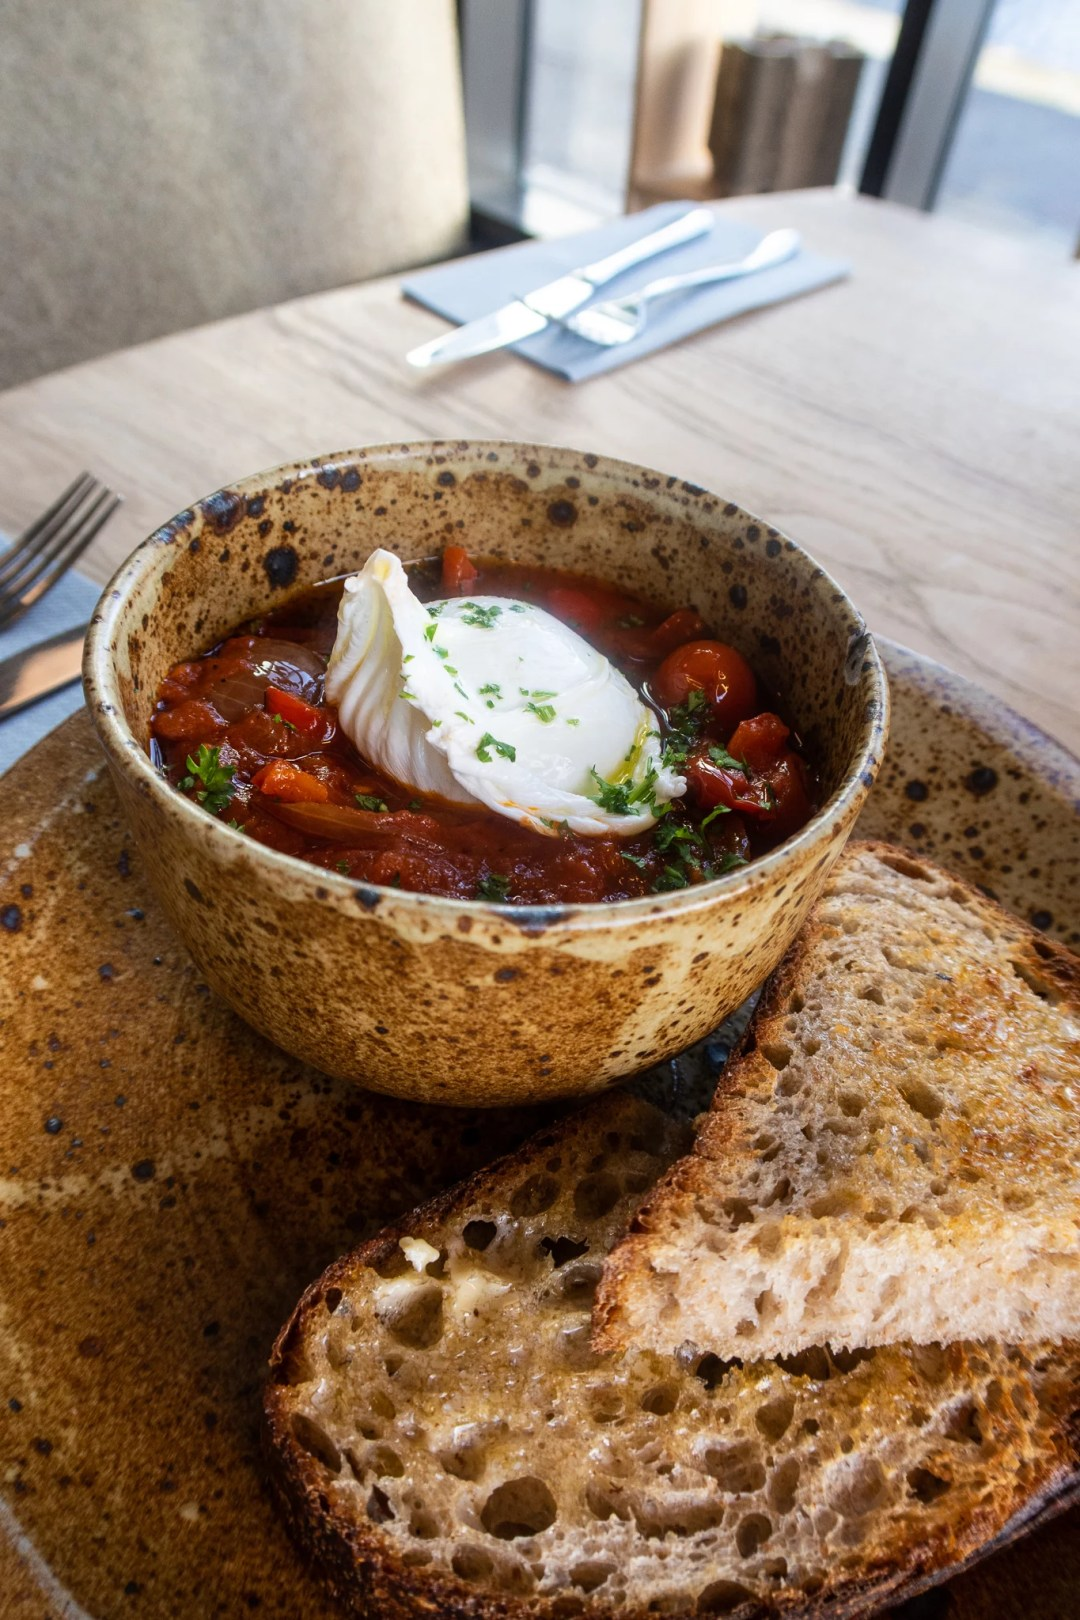 Shaksuka, an Israeli dish with roasted peppers in a rich tomato, cumain and saffron Ragu. Served with sourdough toast and poached egg. £8 (v)